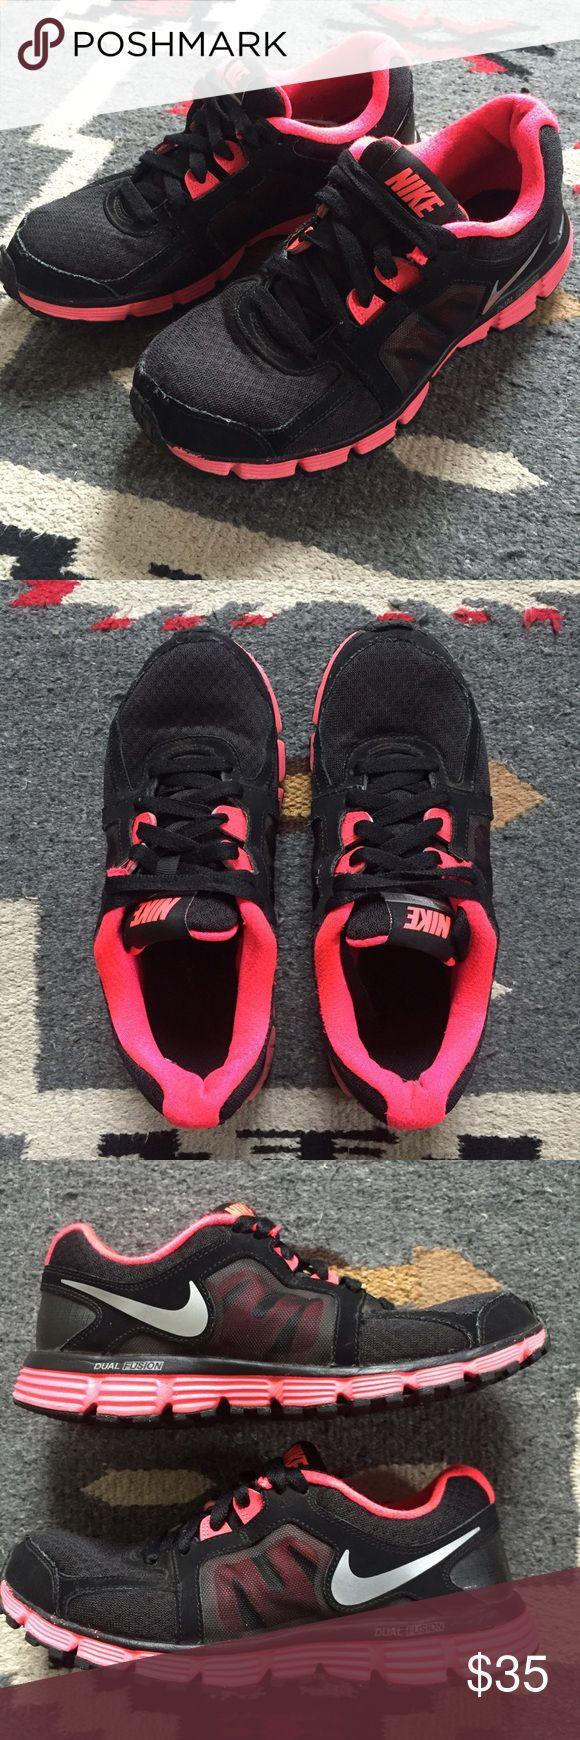 Nike Dual Fusion ST2, size 7.5 black / neon coral Nike Dual Fusion ST2, Women's size 7.5 in black and neon coral colorway. Good used condition. Still has lots of life left! Nike Shoes Athletic Shoes